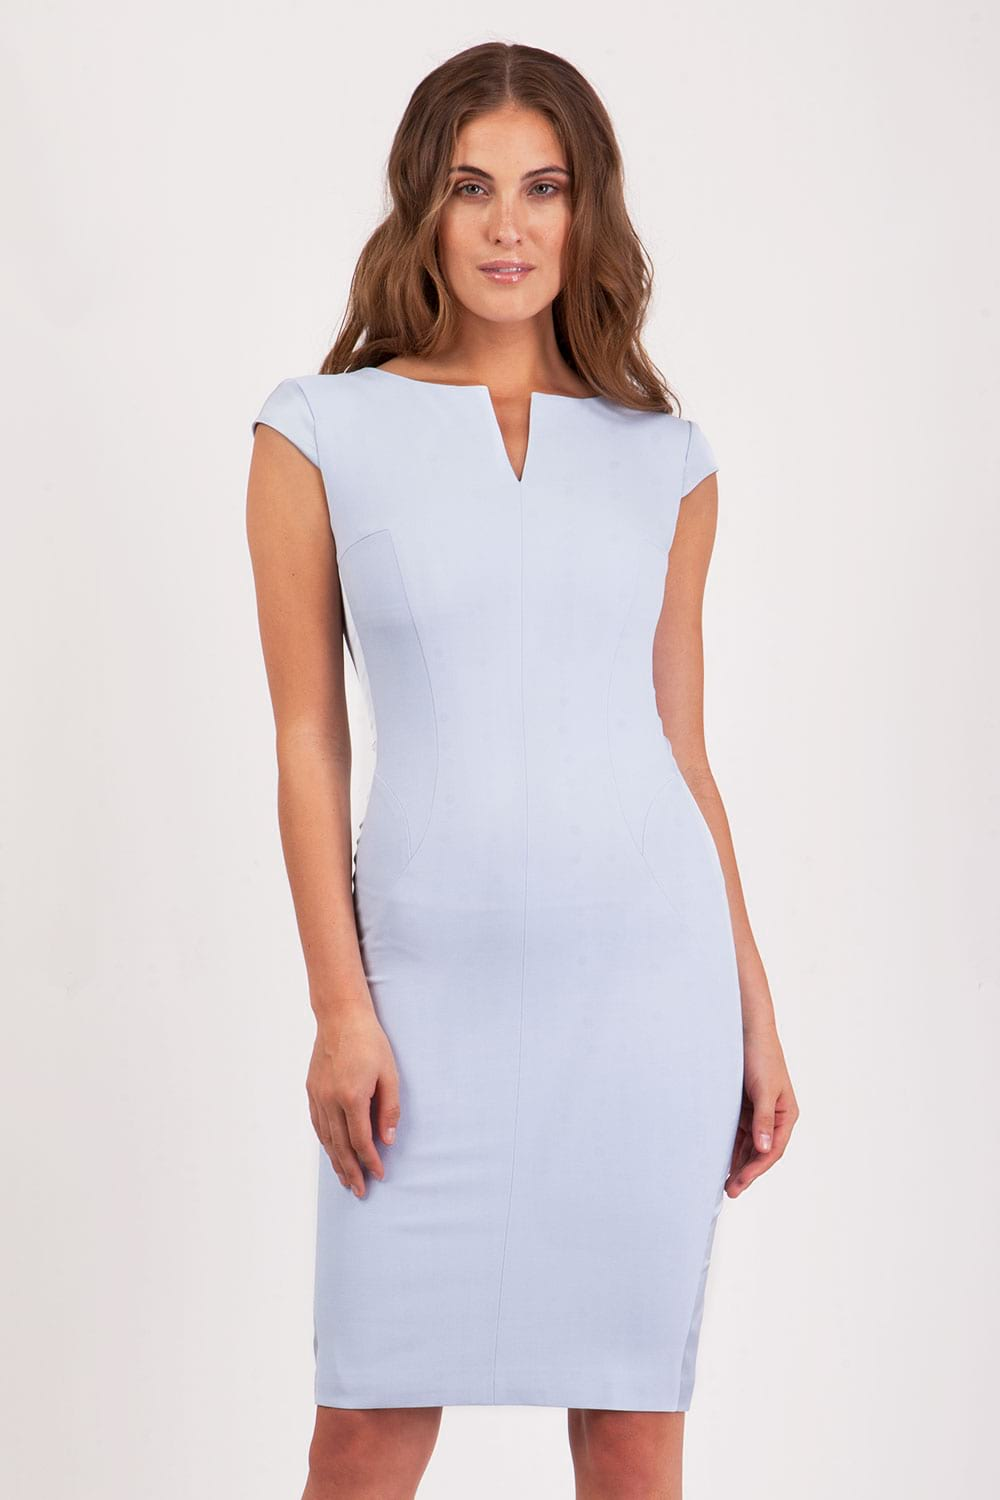 Hybrid Fashion 967 Sephora Bodycon Pencil Dress